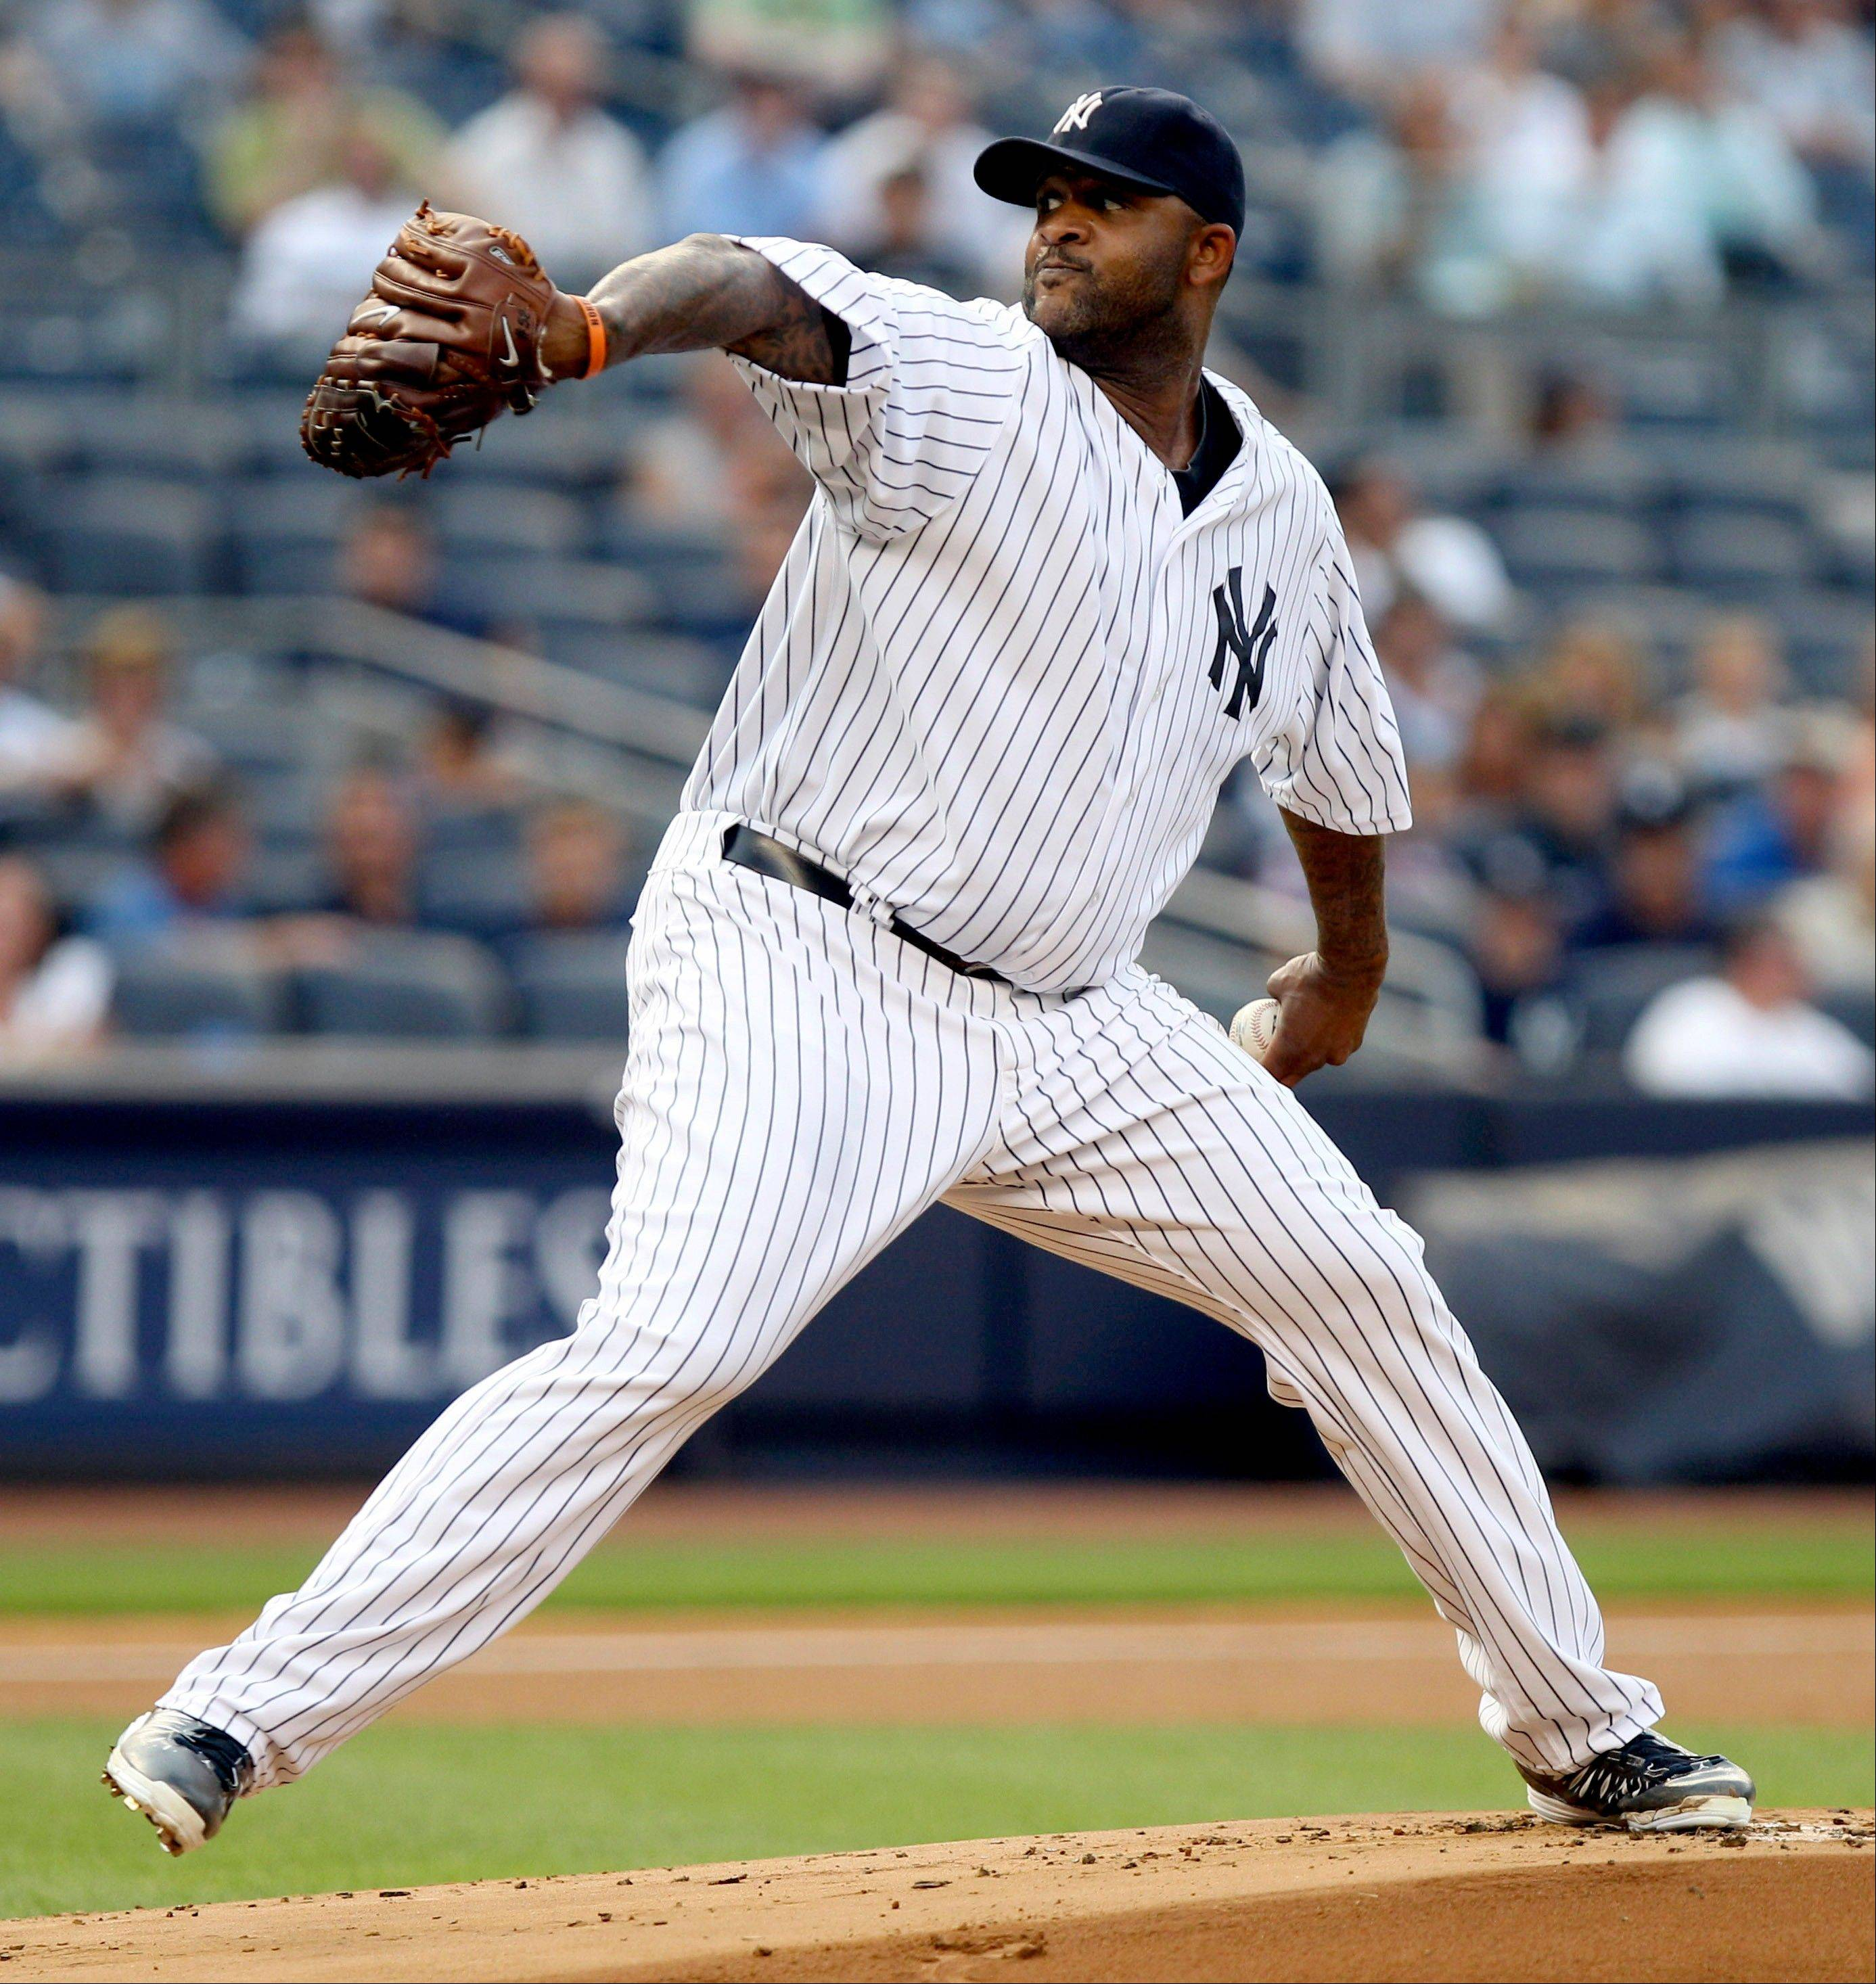 New York Yankees starting pitcher CC Sabathia delivers Tuesday during the first inning against the Toronto Blue Jays, at Yankee Stadium in New York.